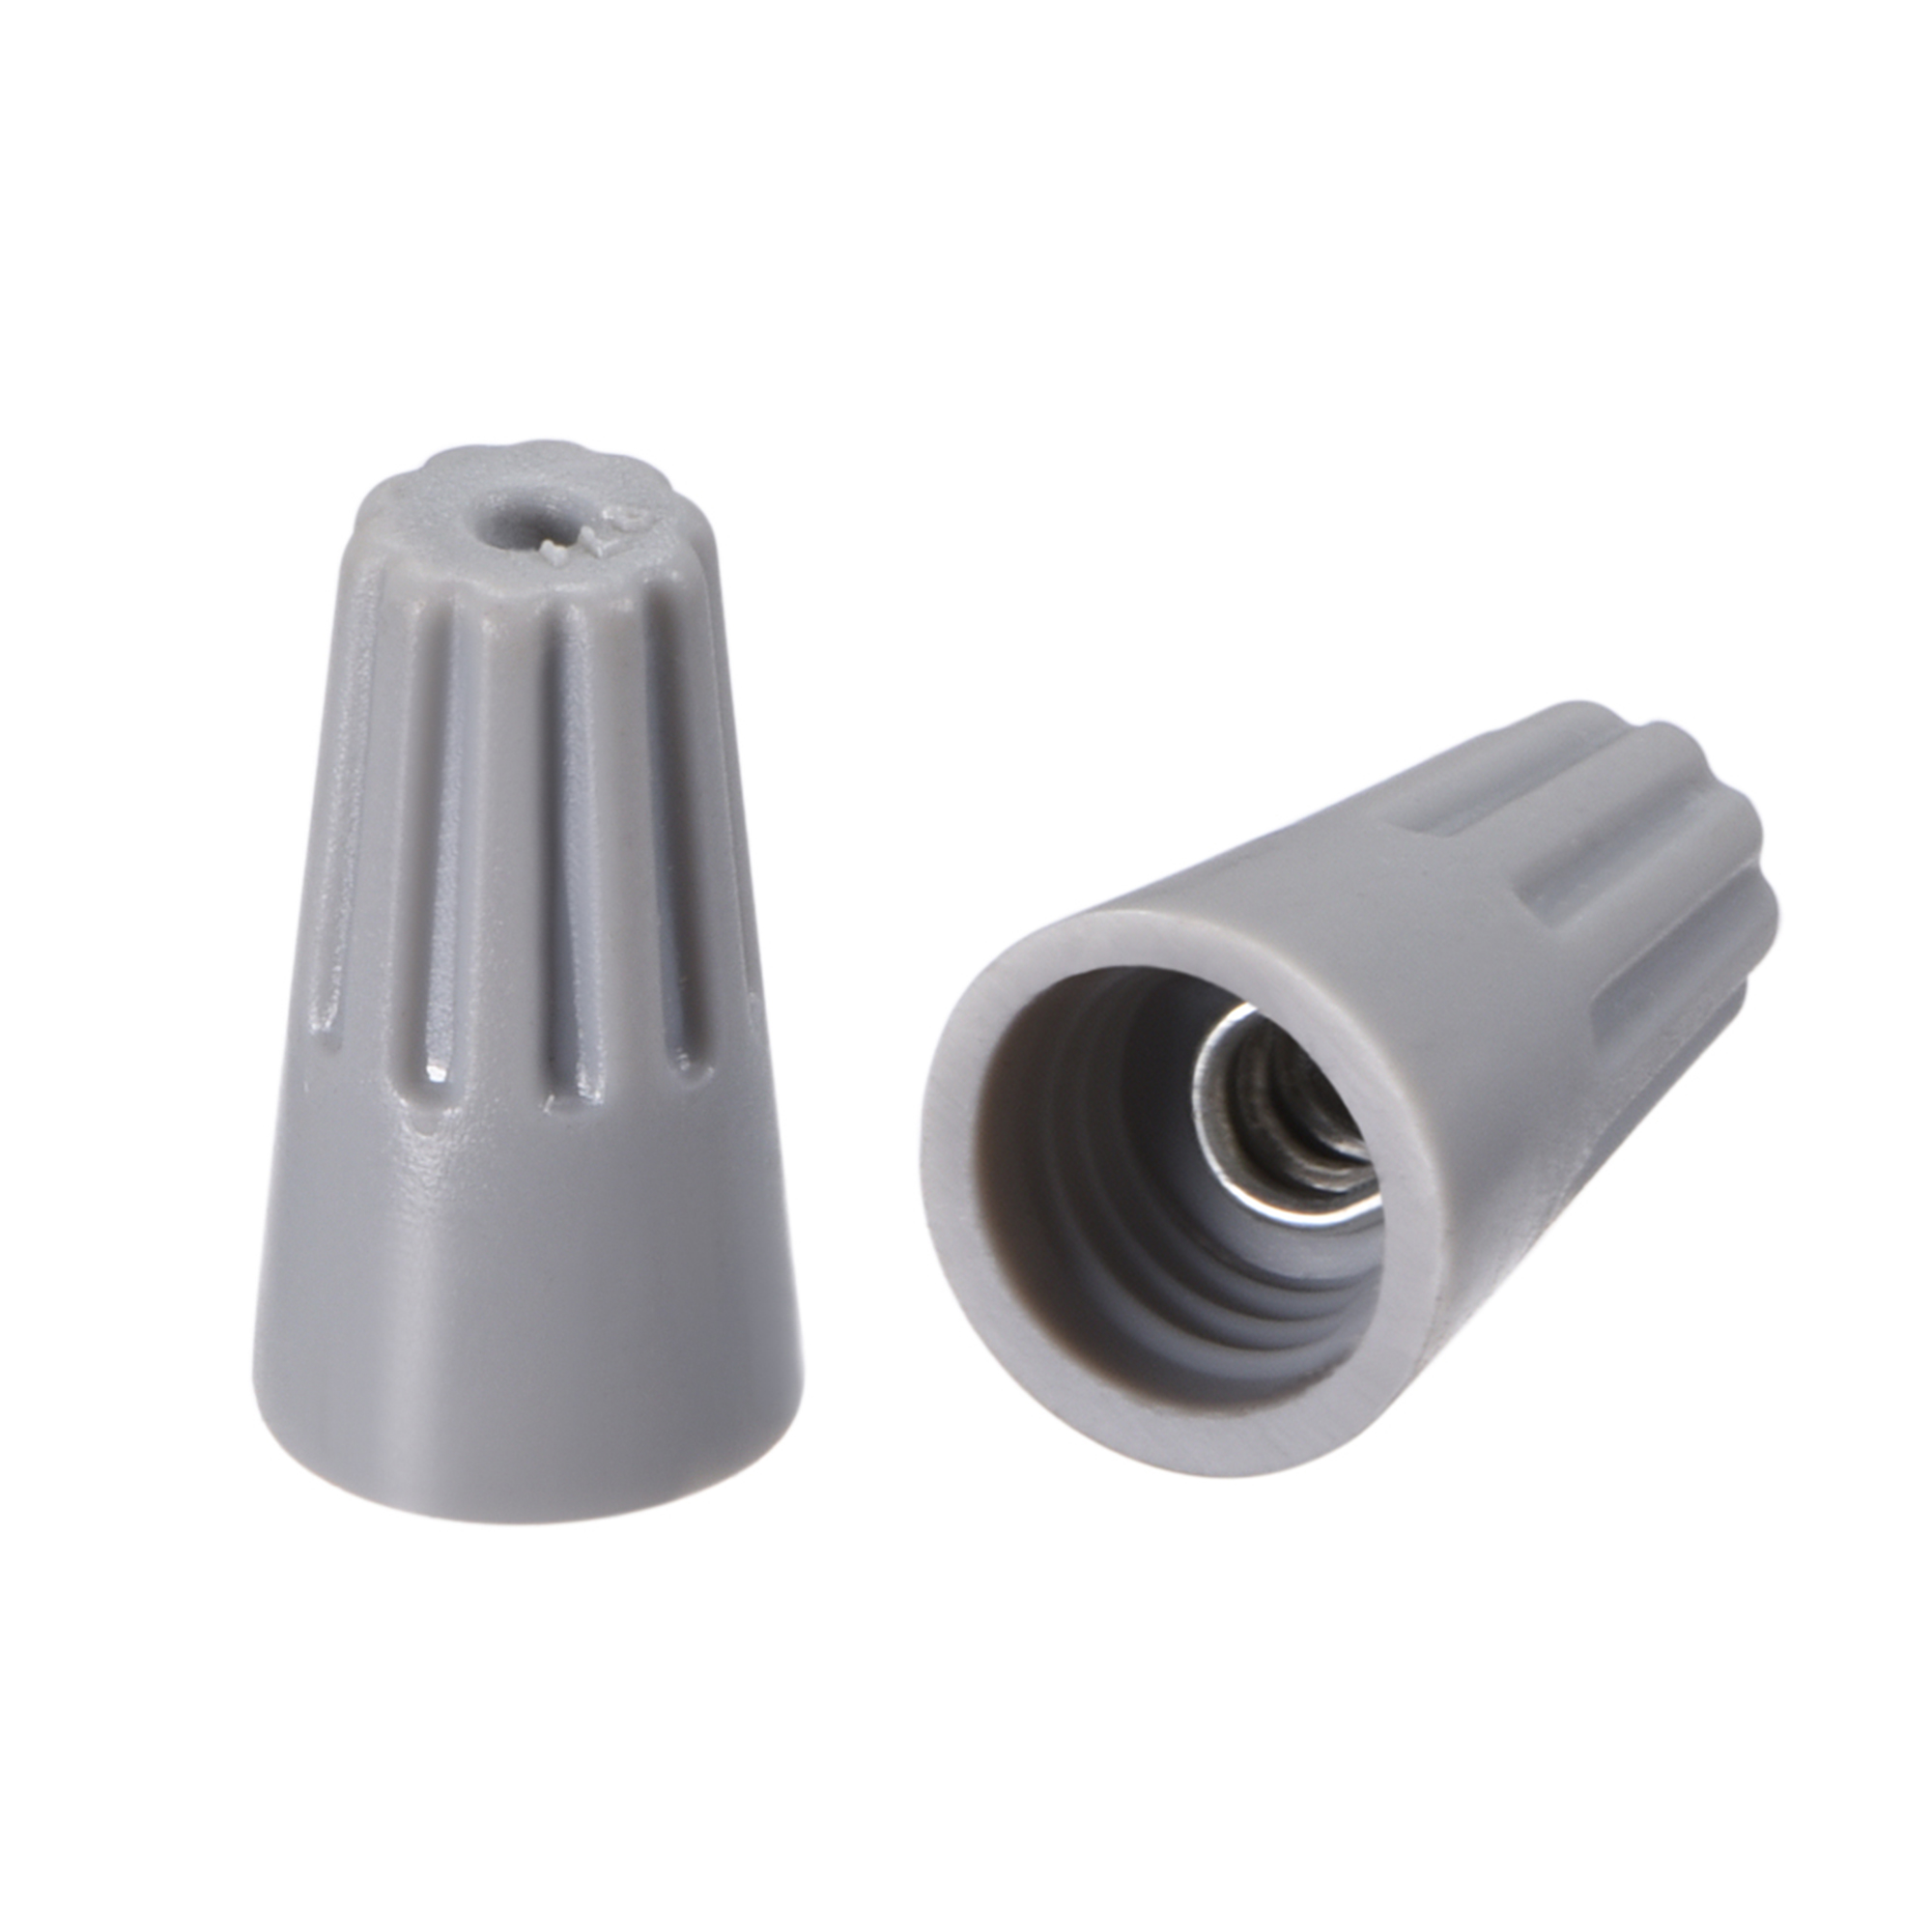 wire nuts electrical connectors twist nut caps terminals gray 30 pcs wire nut color size chart wire nut cover [ 2000 x 2000 Pixel ]